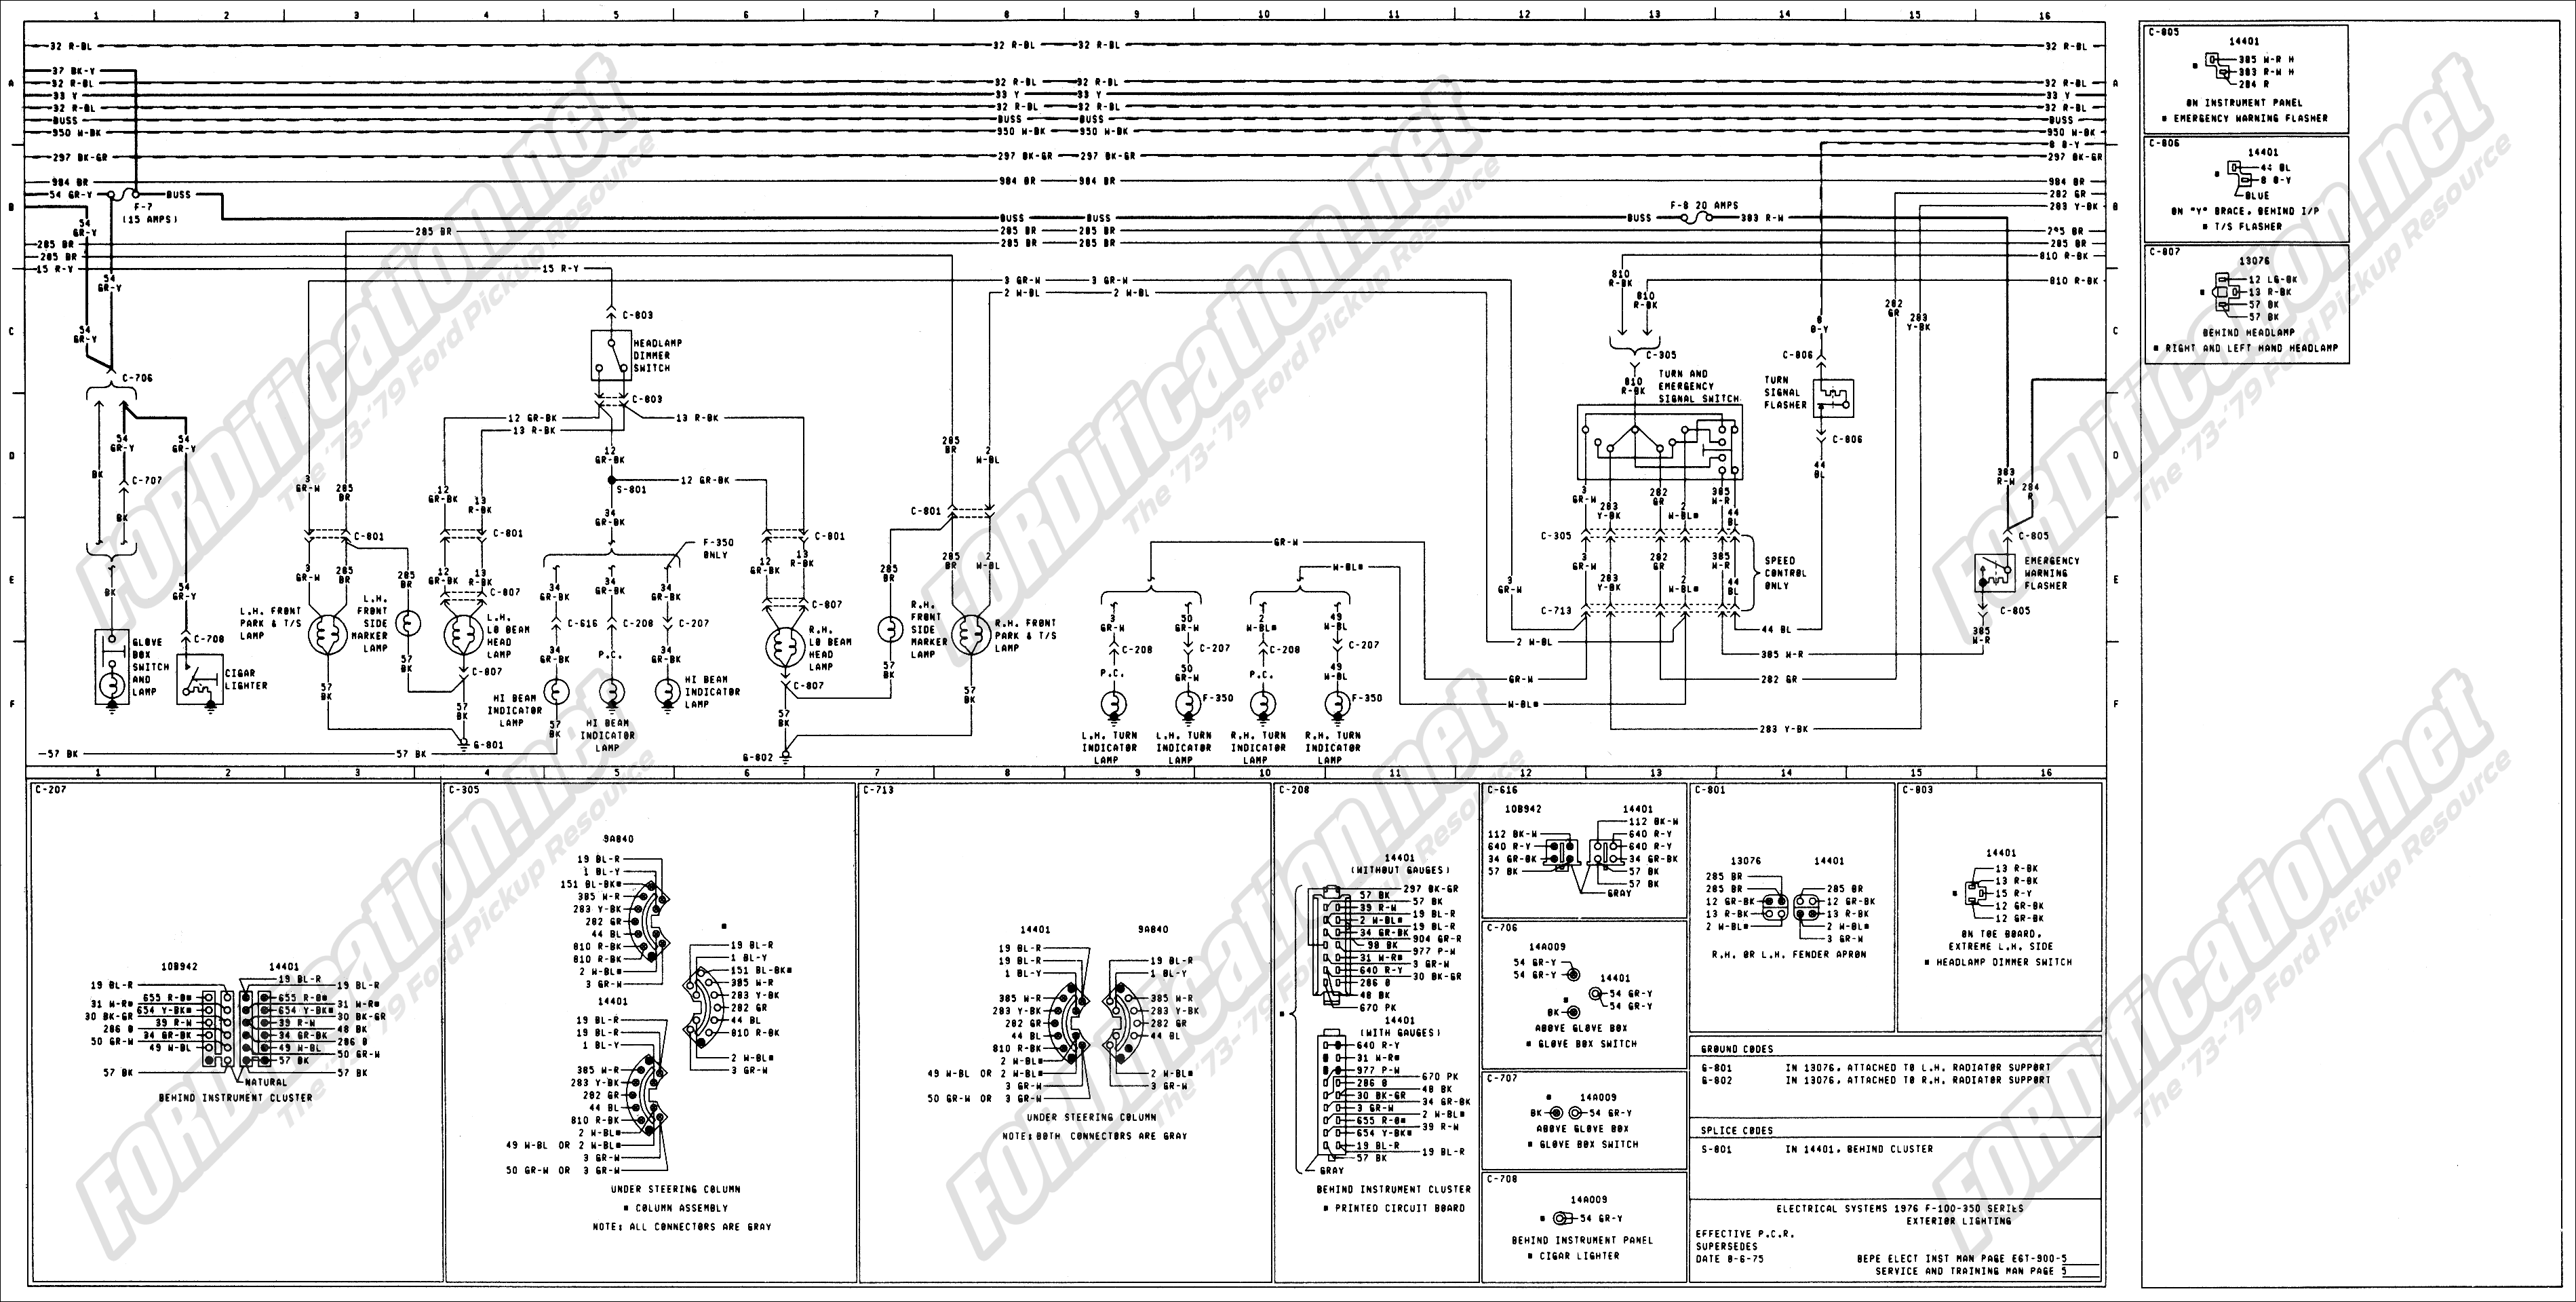 Ford F100 Fuse Box Starting Know About Wiring Diagram 68 1976 F150 Schematic Rh Asparklingjourney Com 1965